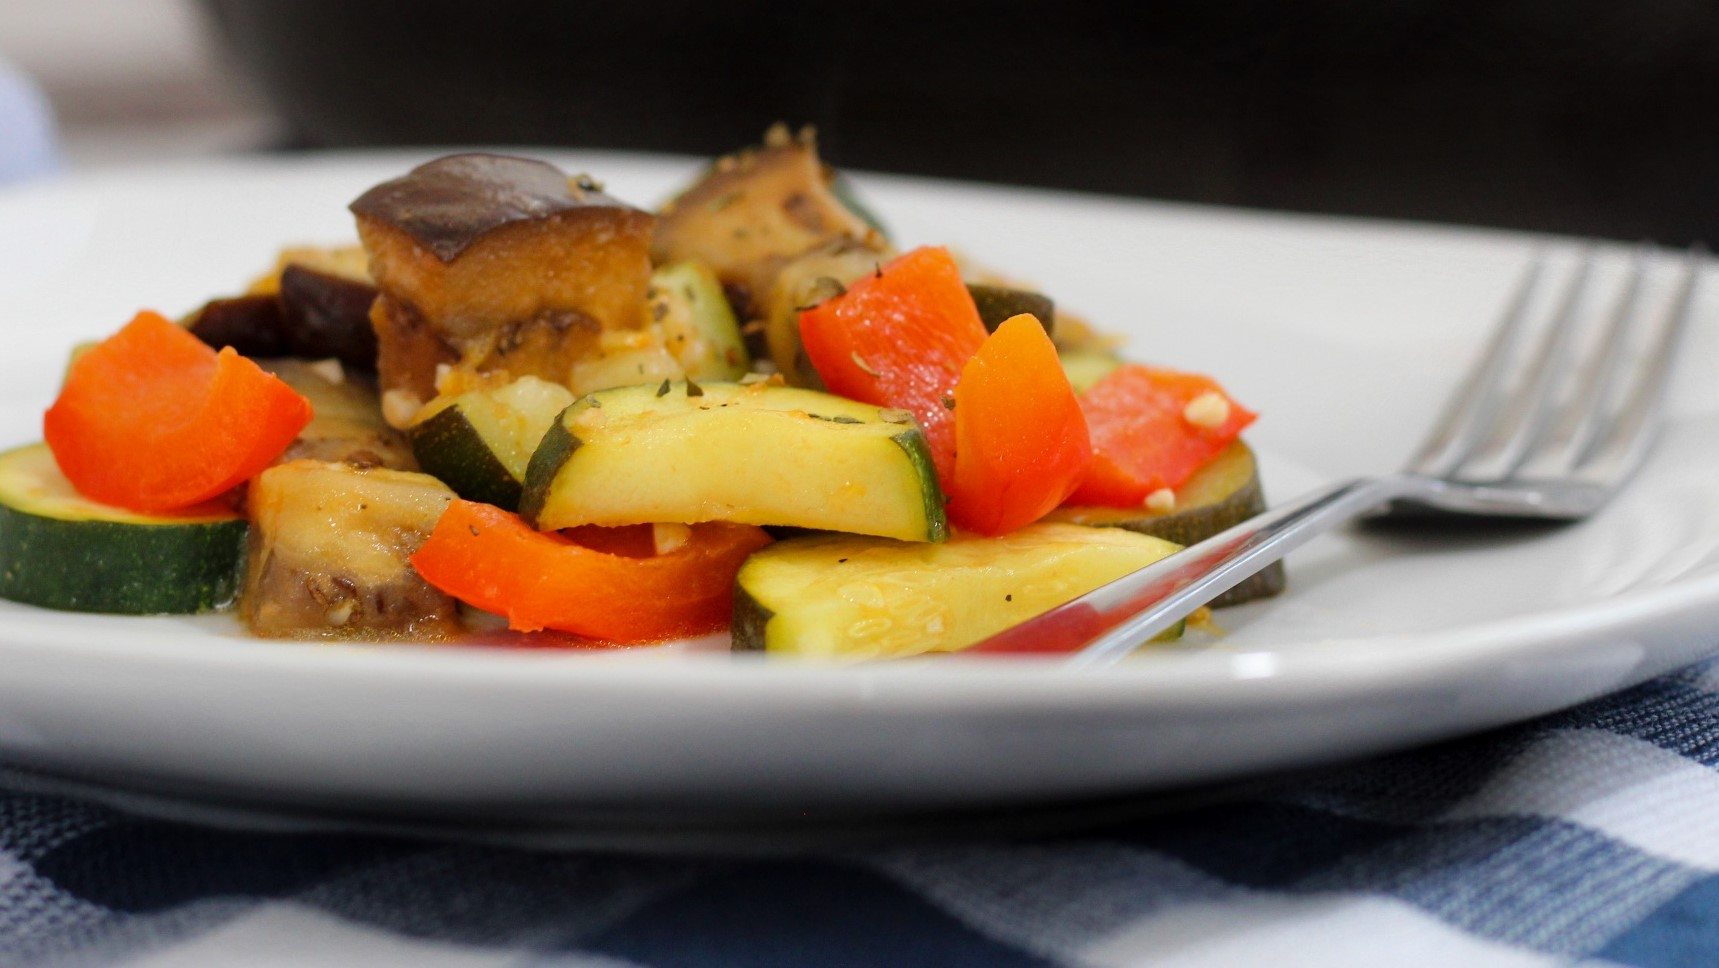 featured image for Mainely Dish Recipe Video: Ratatouille